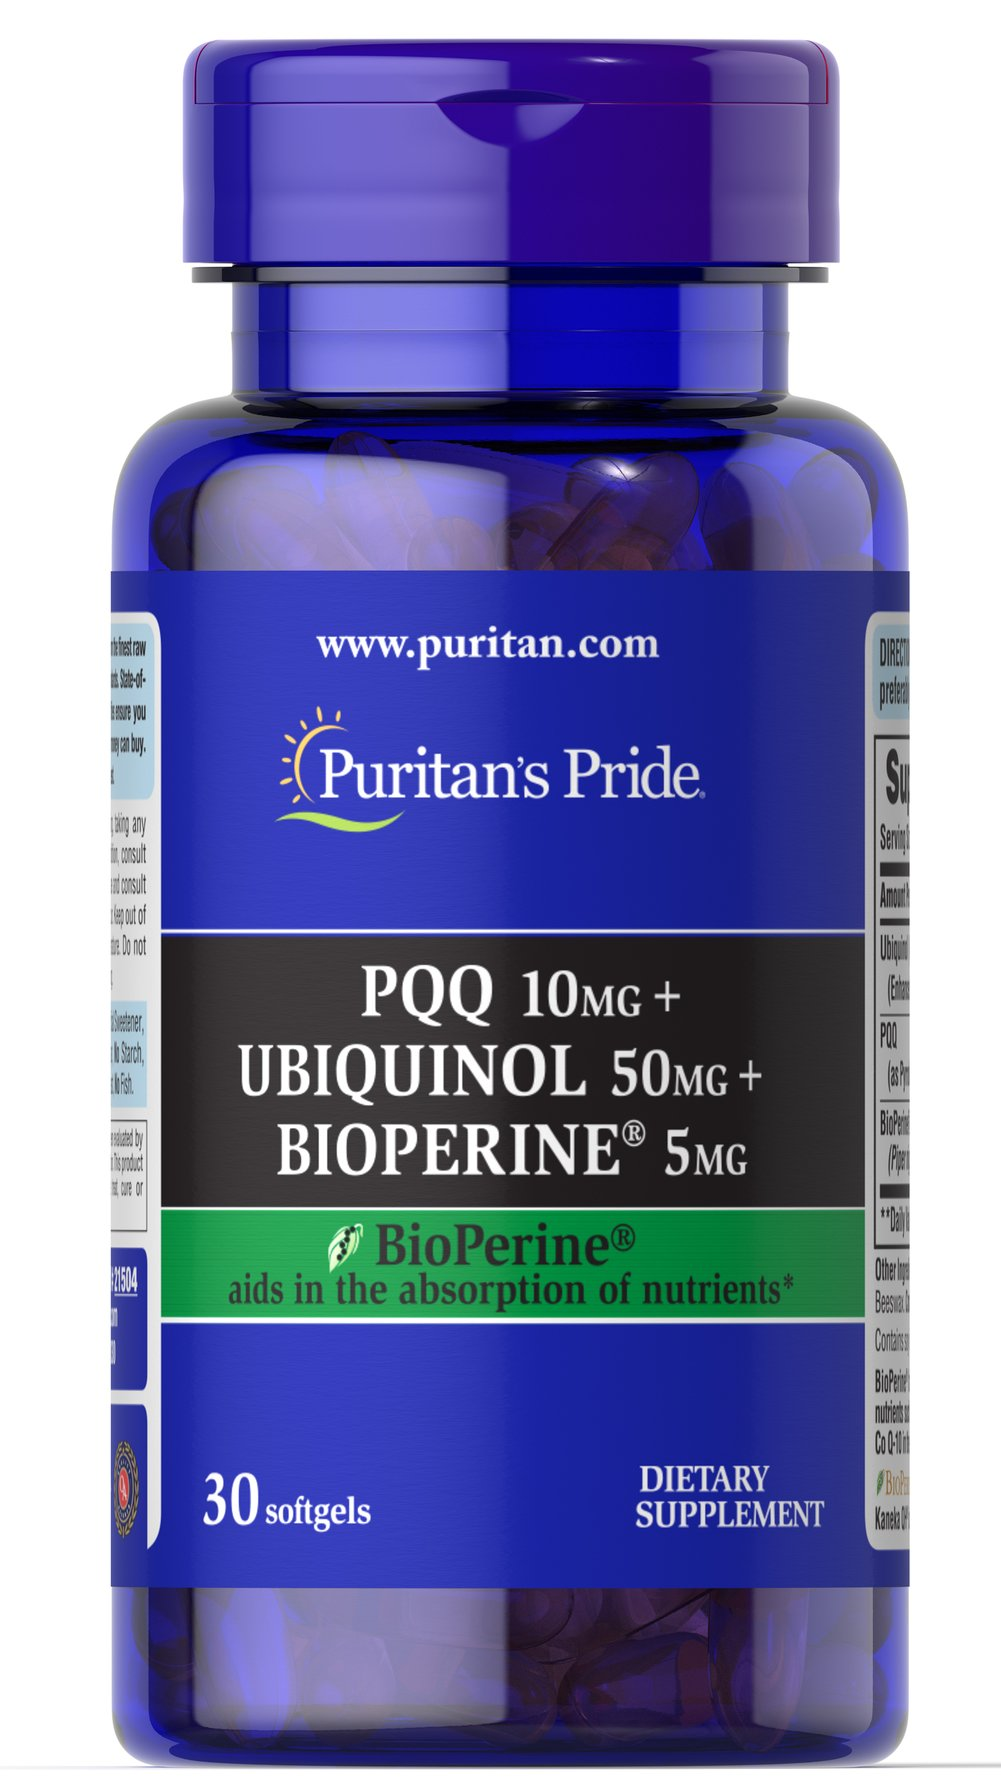 PQQ 10mg + Ubiquinol 50mg + Bioperine 5mg Thumbnail Alternate Bottle View